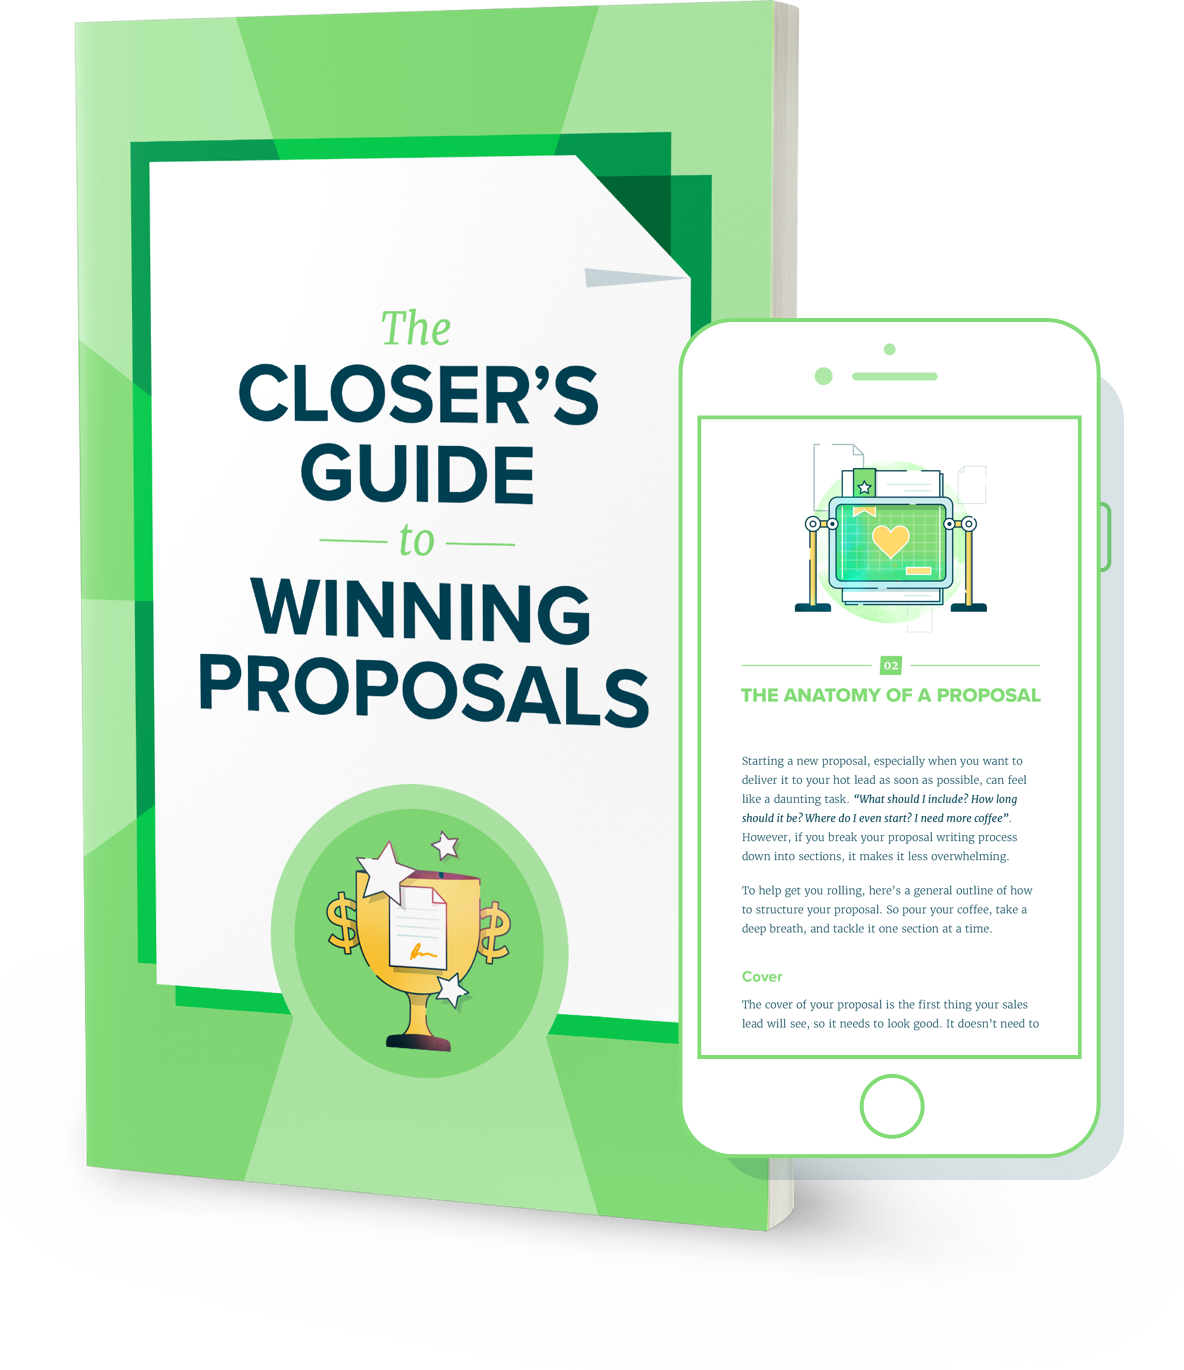 The Closer's Guide to Winning Proposals